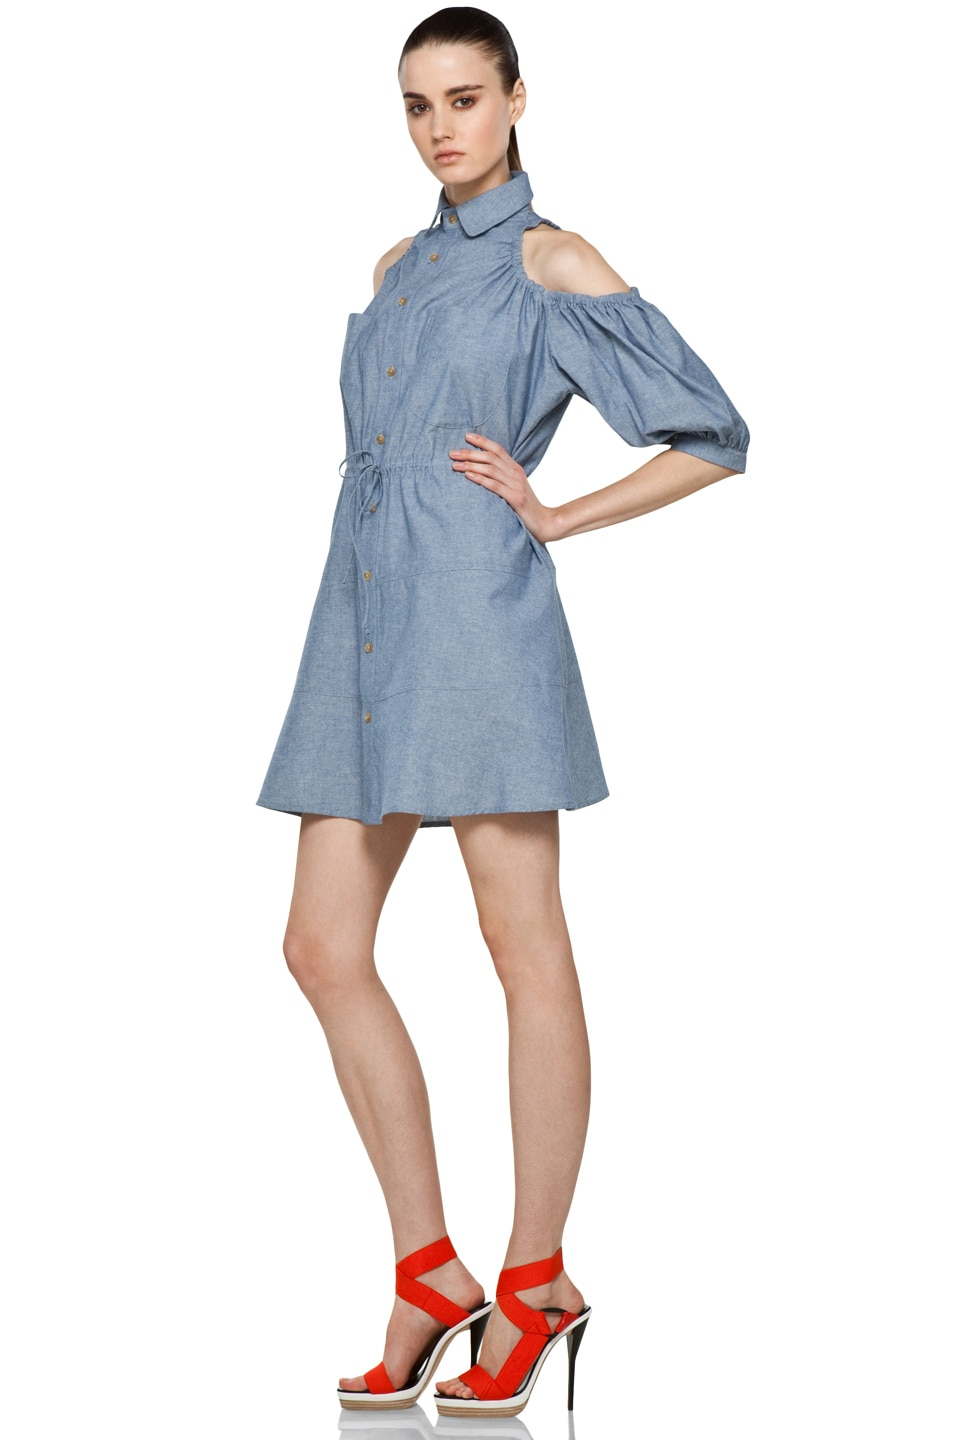 Image 2 of Chloe Sevigny for Opening Ceremony Cut Out Shoulder Blouse Dress in Chambray Blue